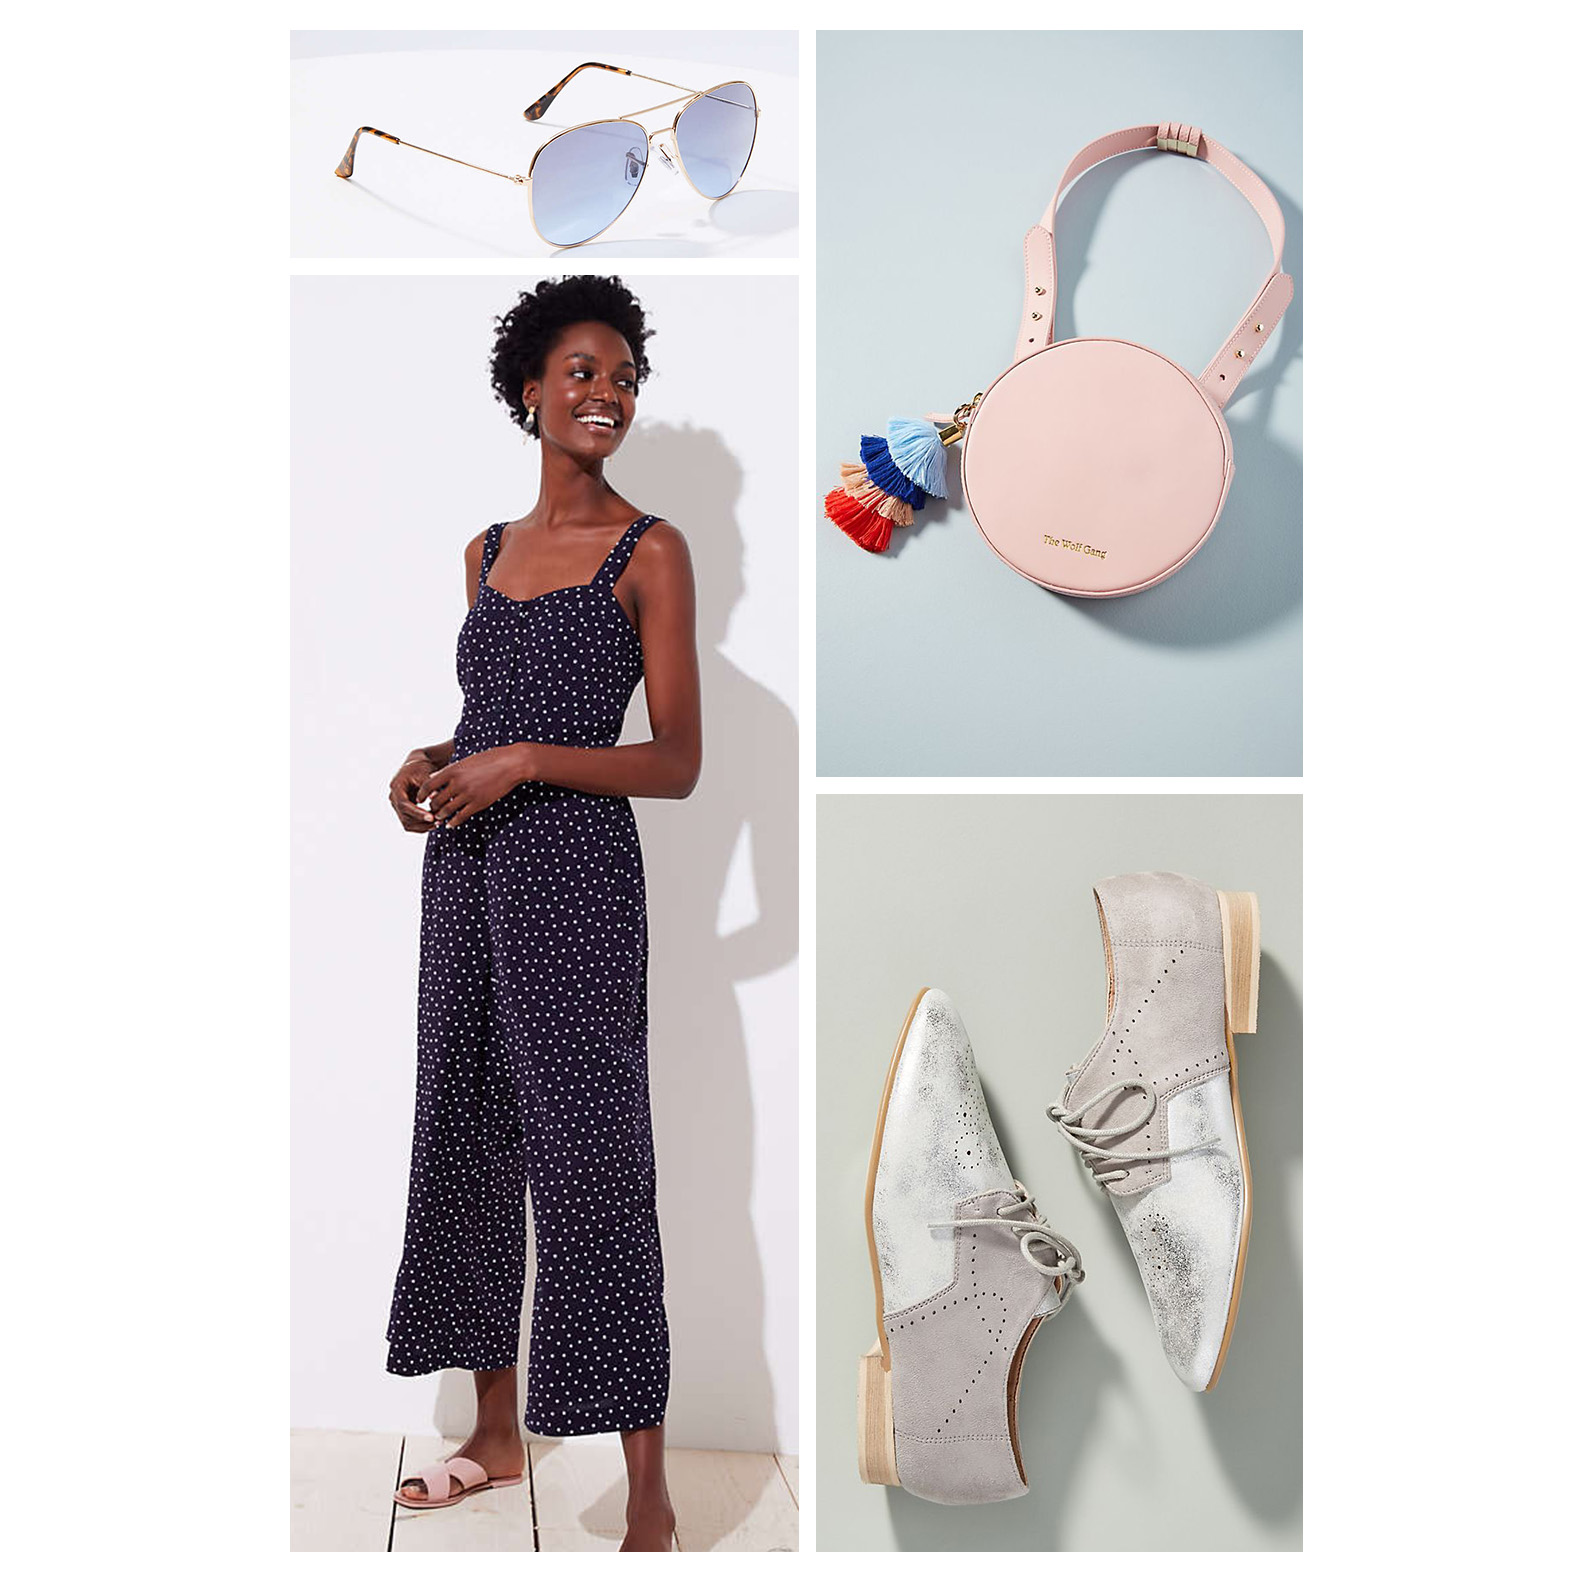 fall-autumn-outfit-weekend-2018-fashion-ideas-navy-blue-jumpsuit-polkadot-aviator-sunglasses-silver-brogues-pink-bag-casual.jpg